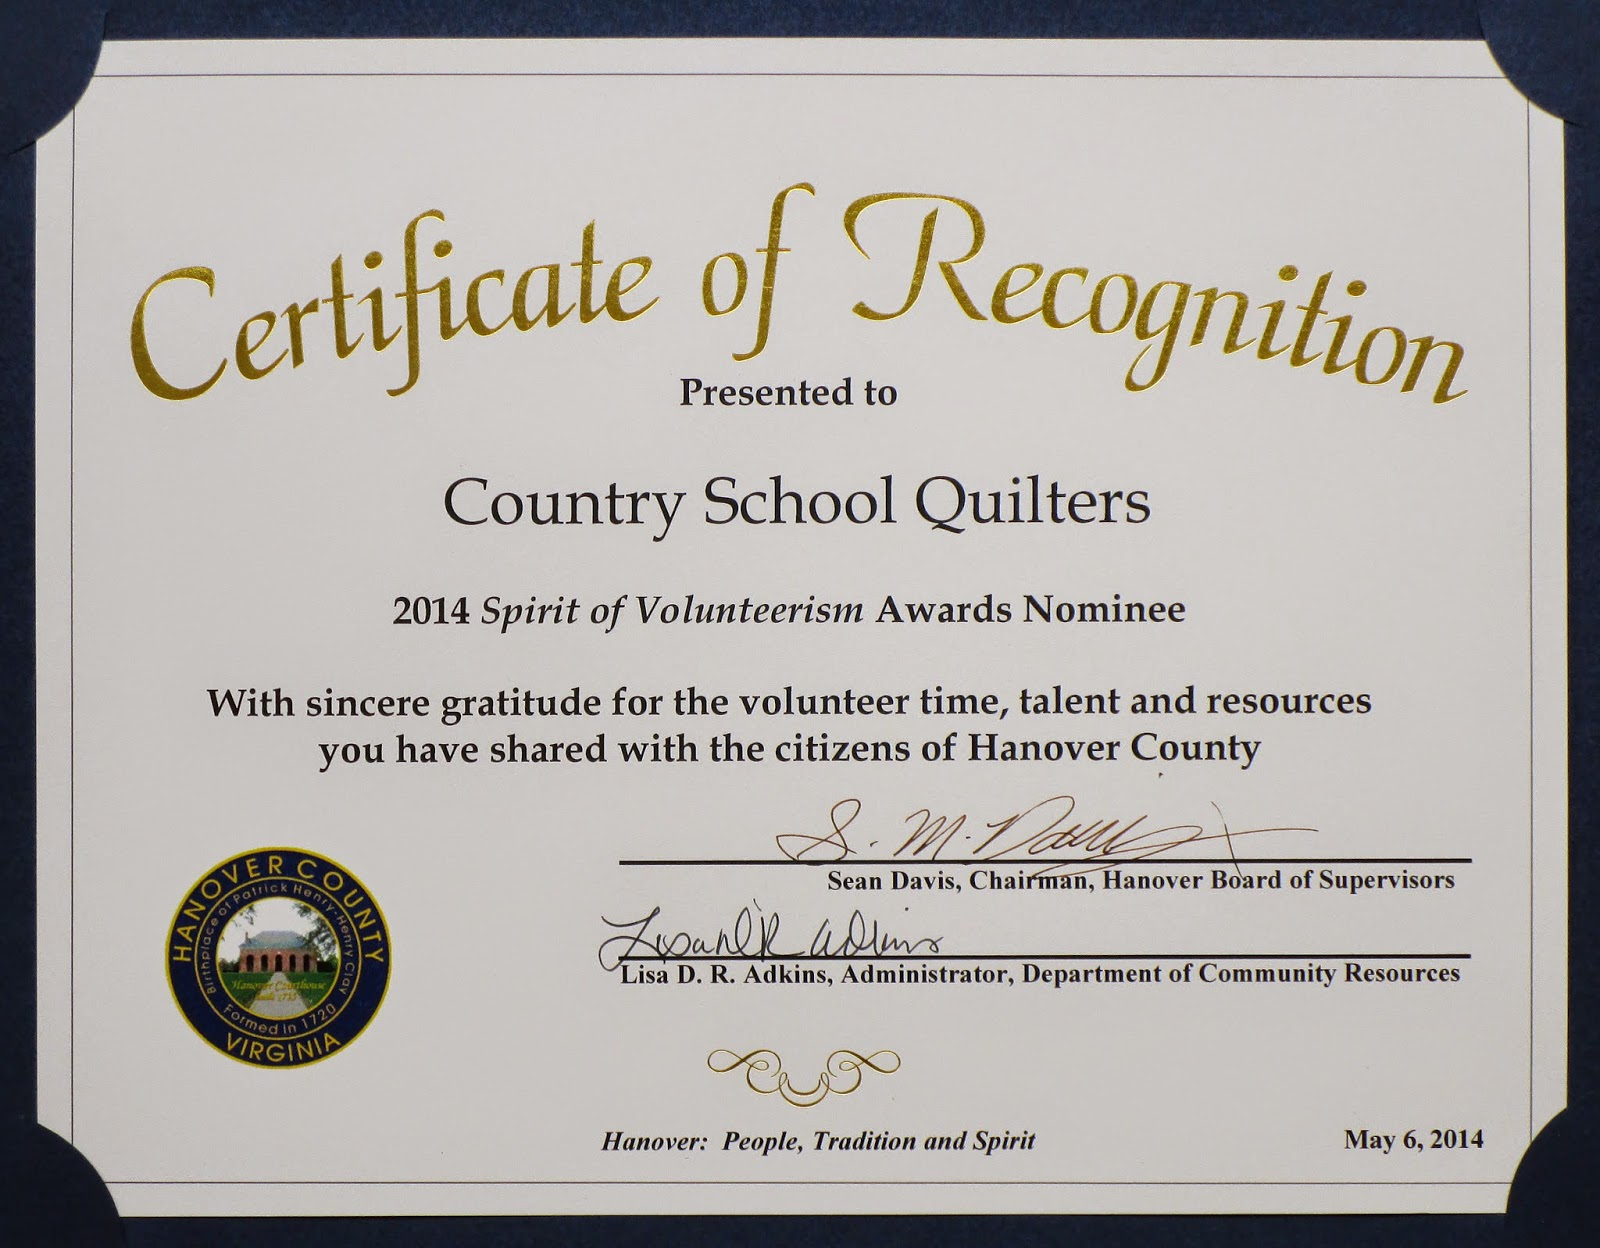 Country School Quilters Certificate Of Recognition